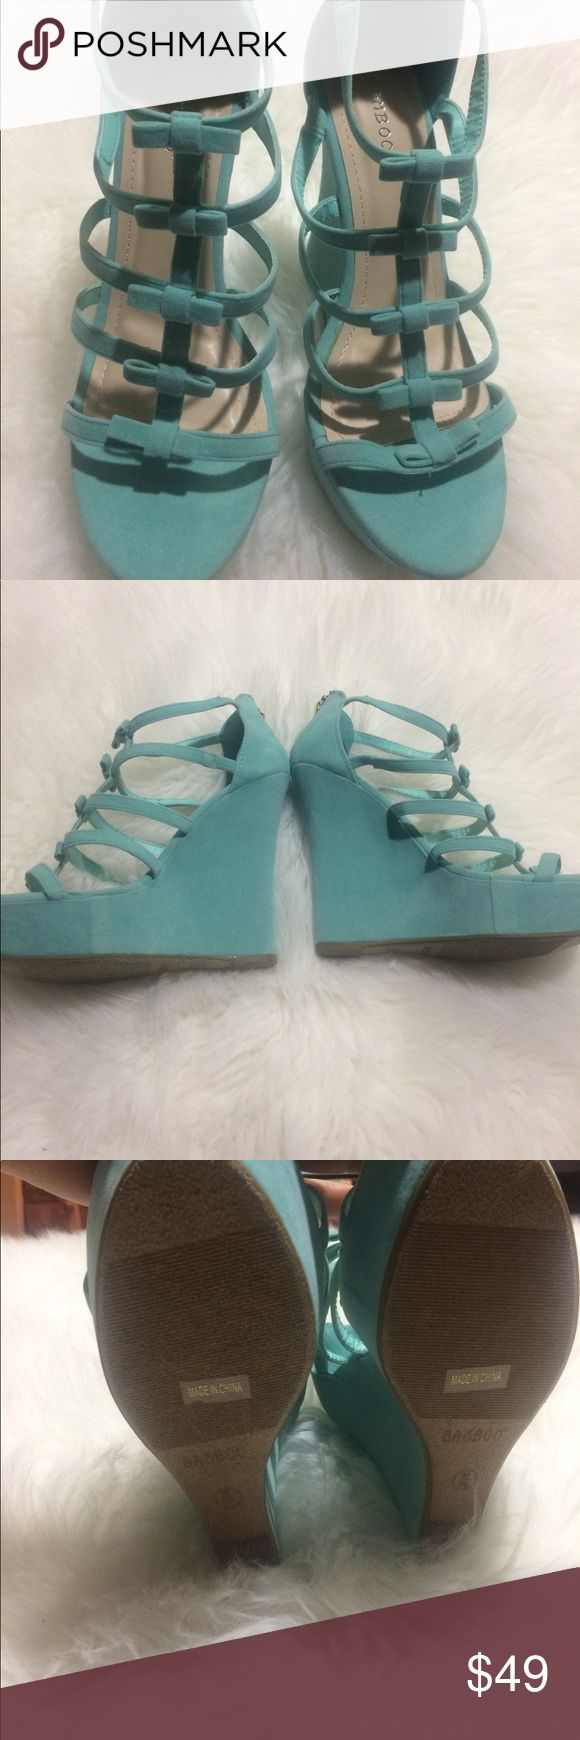 Teal Wedge Shoe This beautiful Teal wedge shoe is the last one of its kind in stock 5 inch heel and a 2 inch platform makes it very comfortable to walk in.  Beautiful color for the season. All our shoes are NEW and discounted to sell .. Bundle and save BAMBOO Shoes Wedges